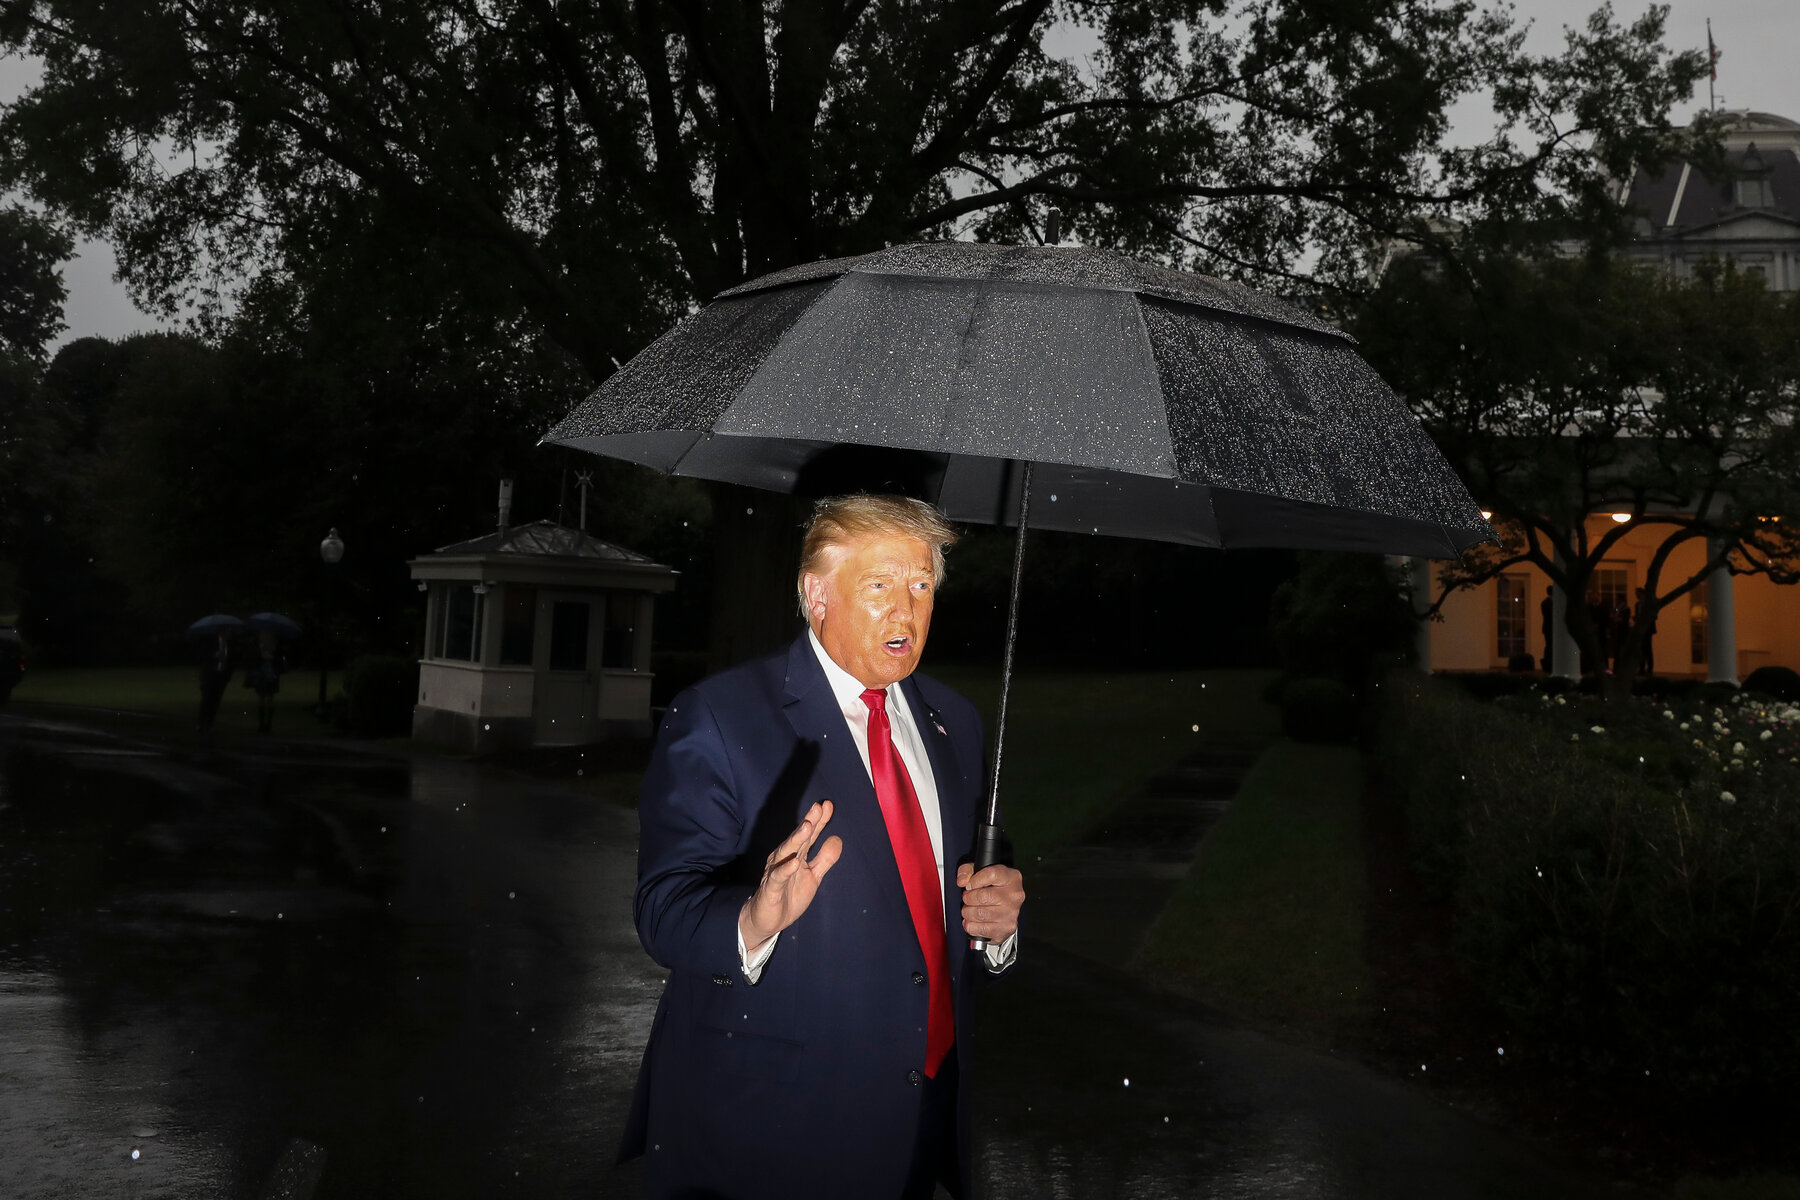 Trump's image has become a sham because of his deeds